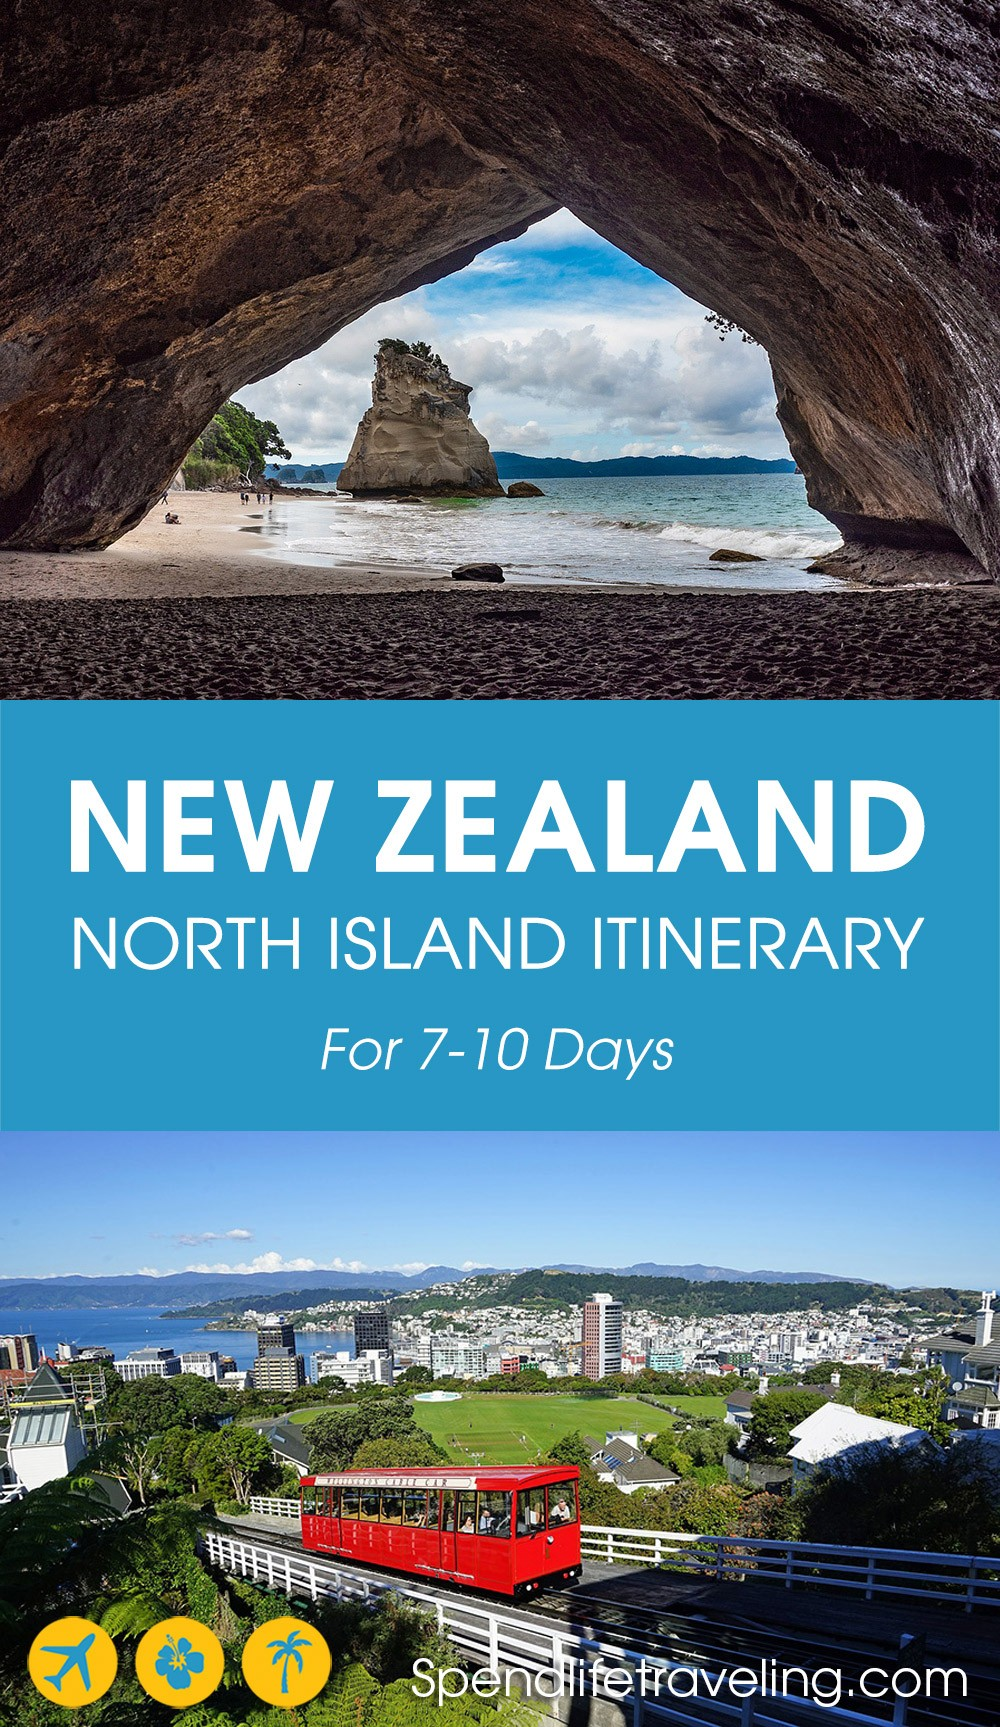 A practical New Zealand North Island itinerary for an unforgettable 7 to 10 day road trip. #newzealand #northisland #bestroadtrip